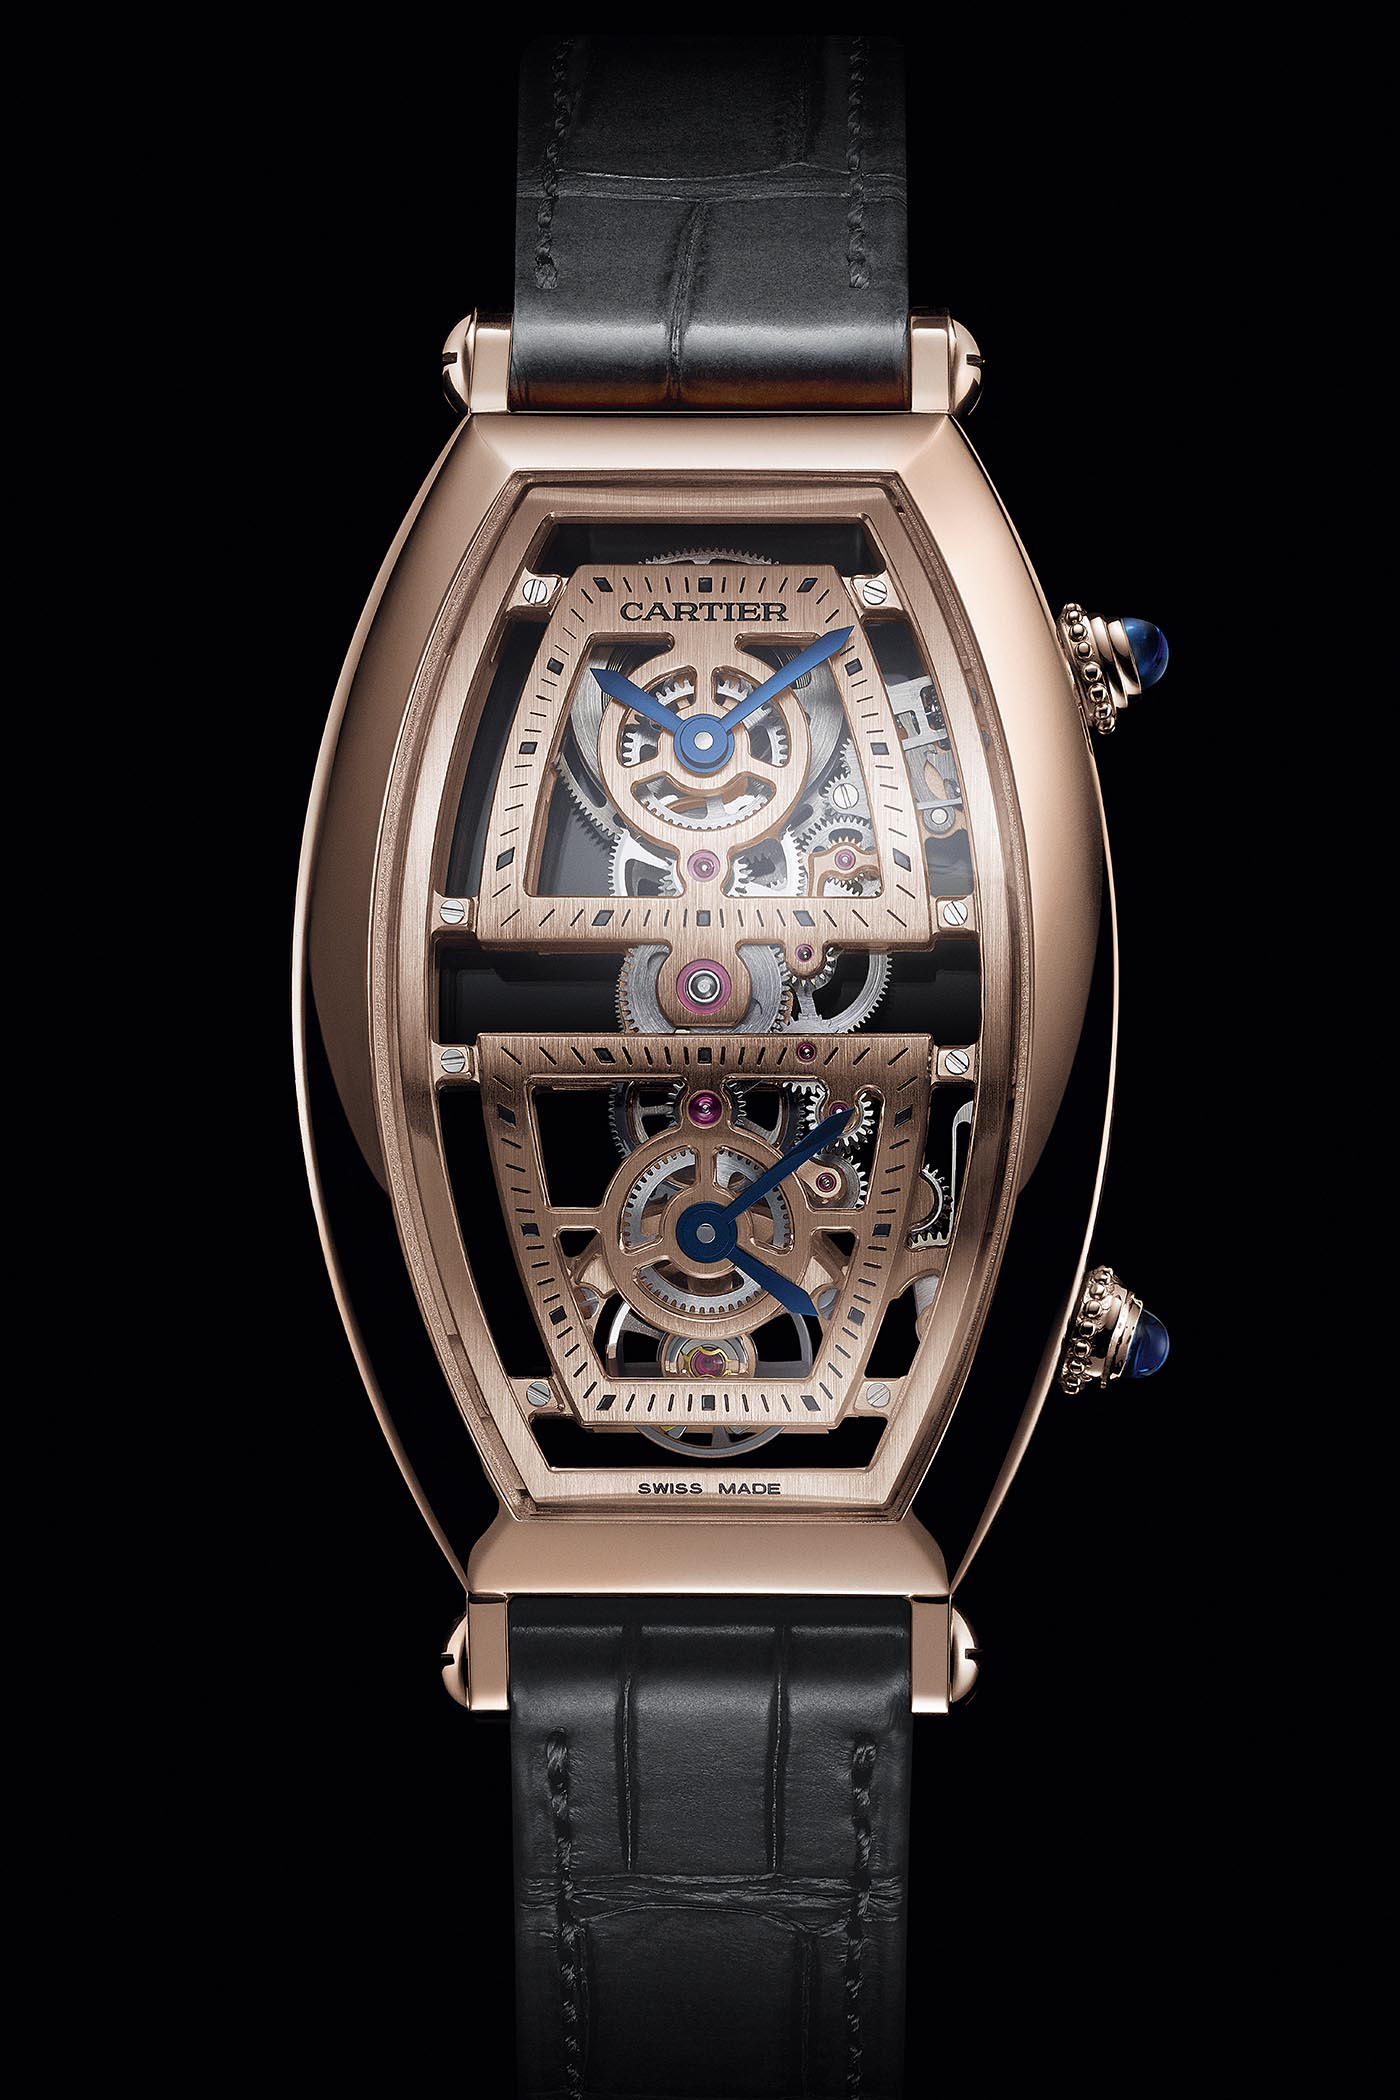 5cfbdeea0db22 Pre-SIHH 2019 - Cartier Prive Collection, The Comaback of the Cartier  Tonneau